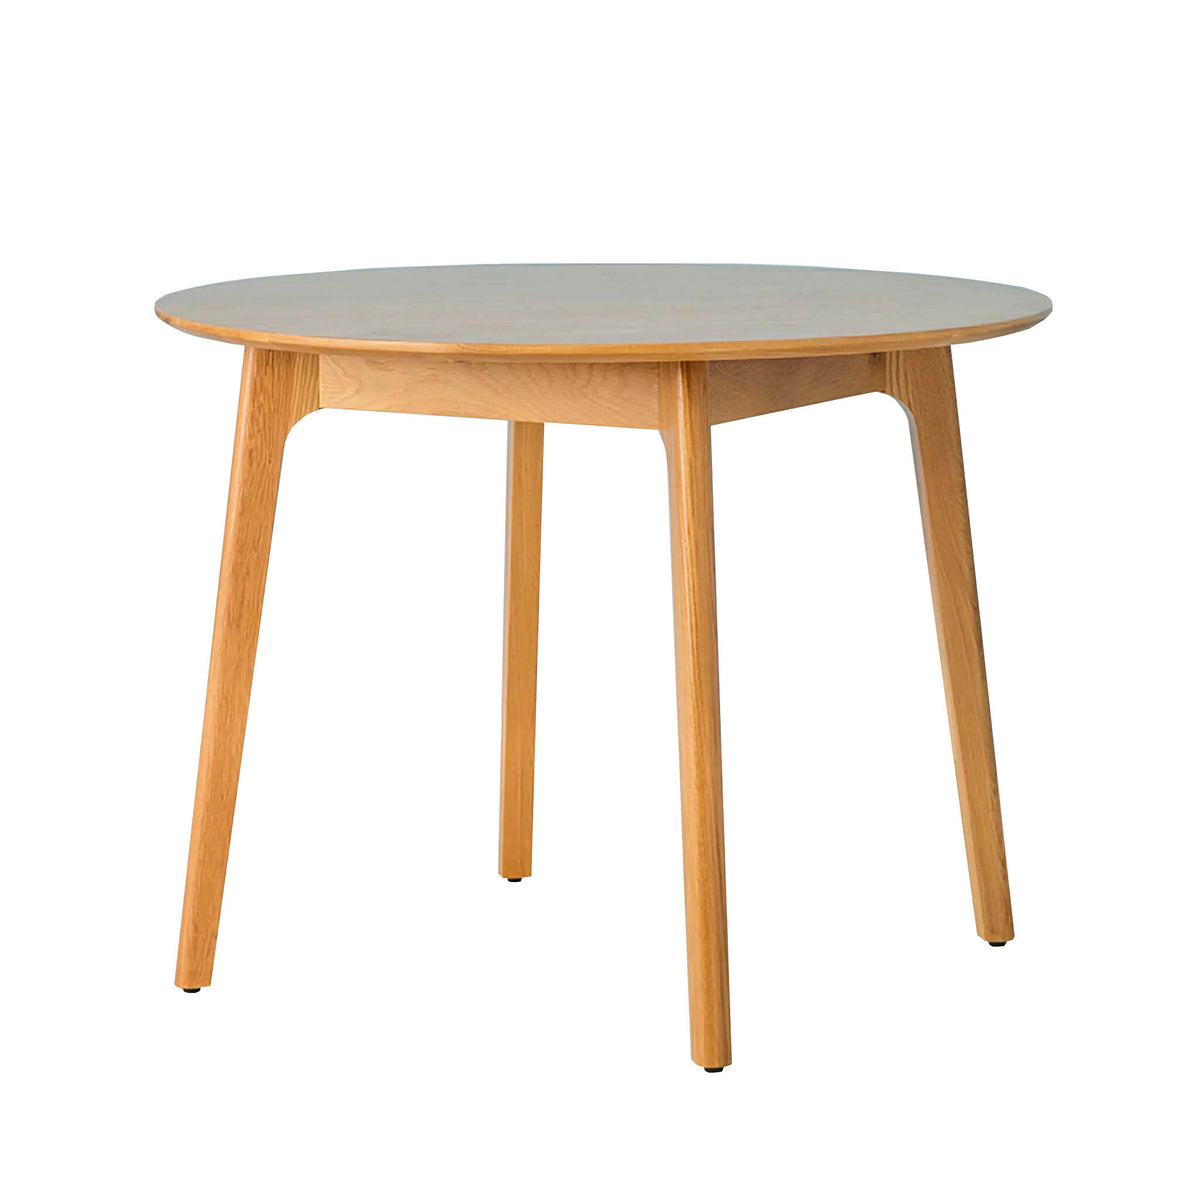 Nordic Oak Round Table Dining Set - Table